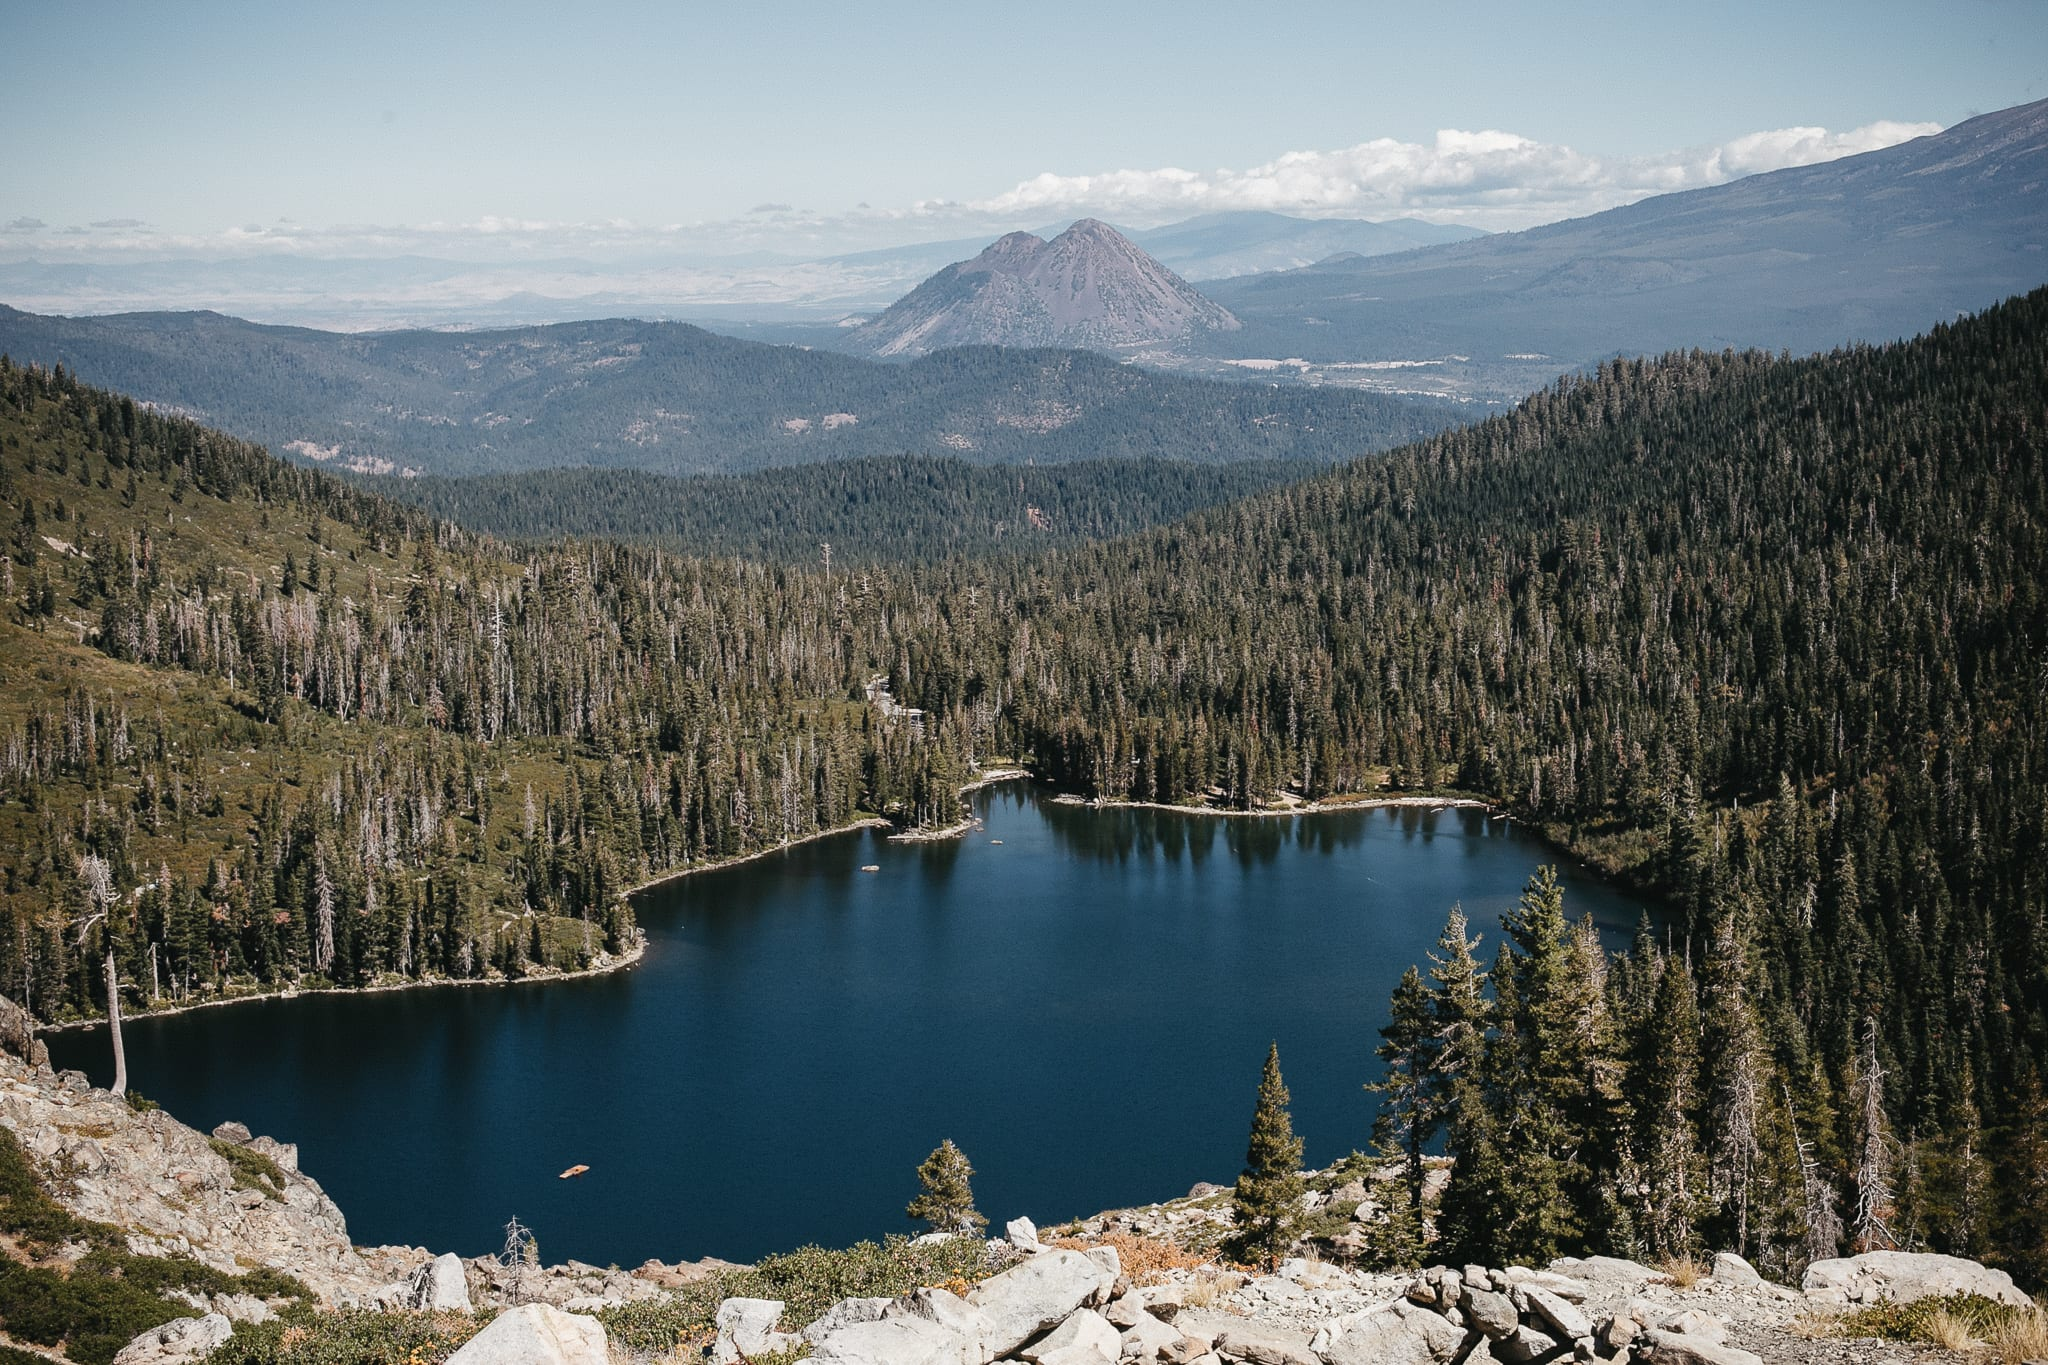 heart-lake-little-castle-lake-mt-shasta-3